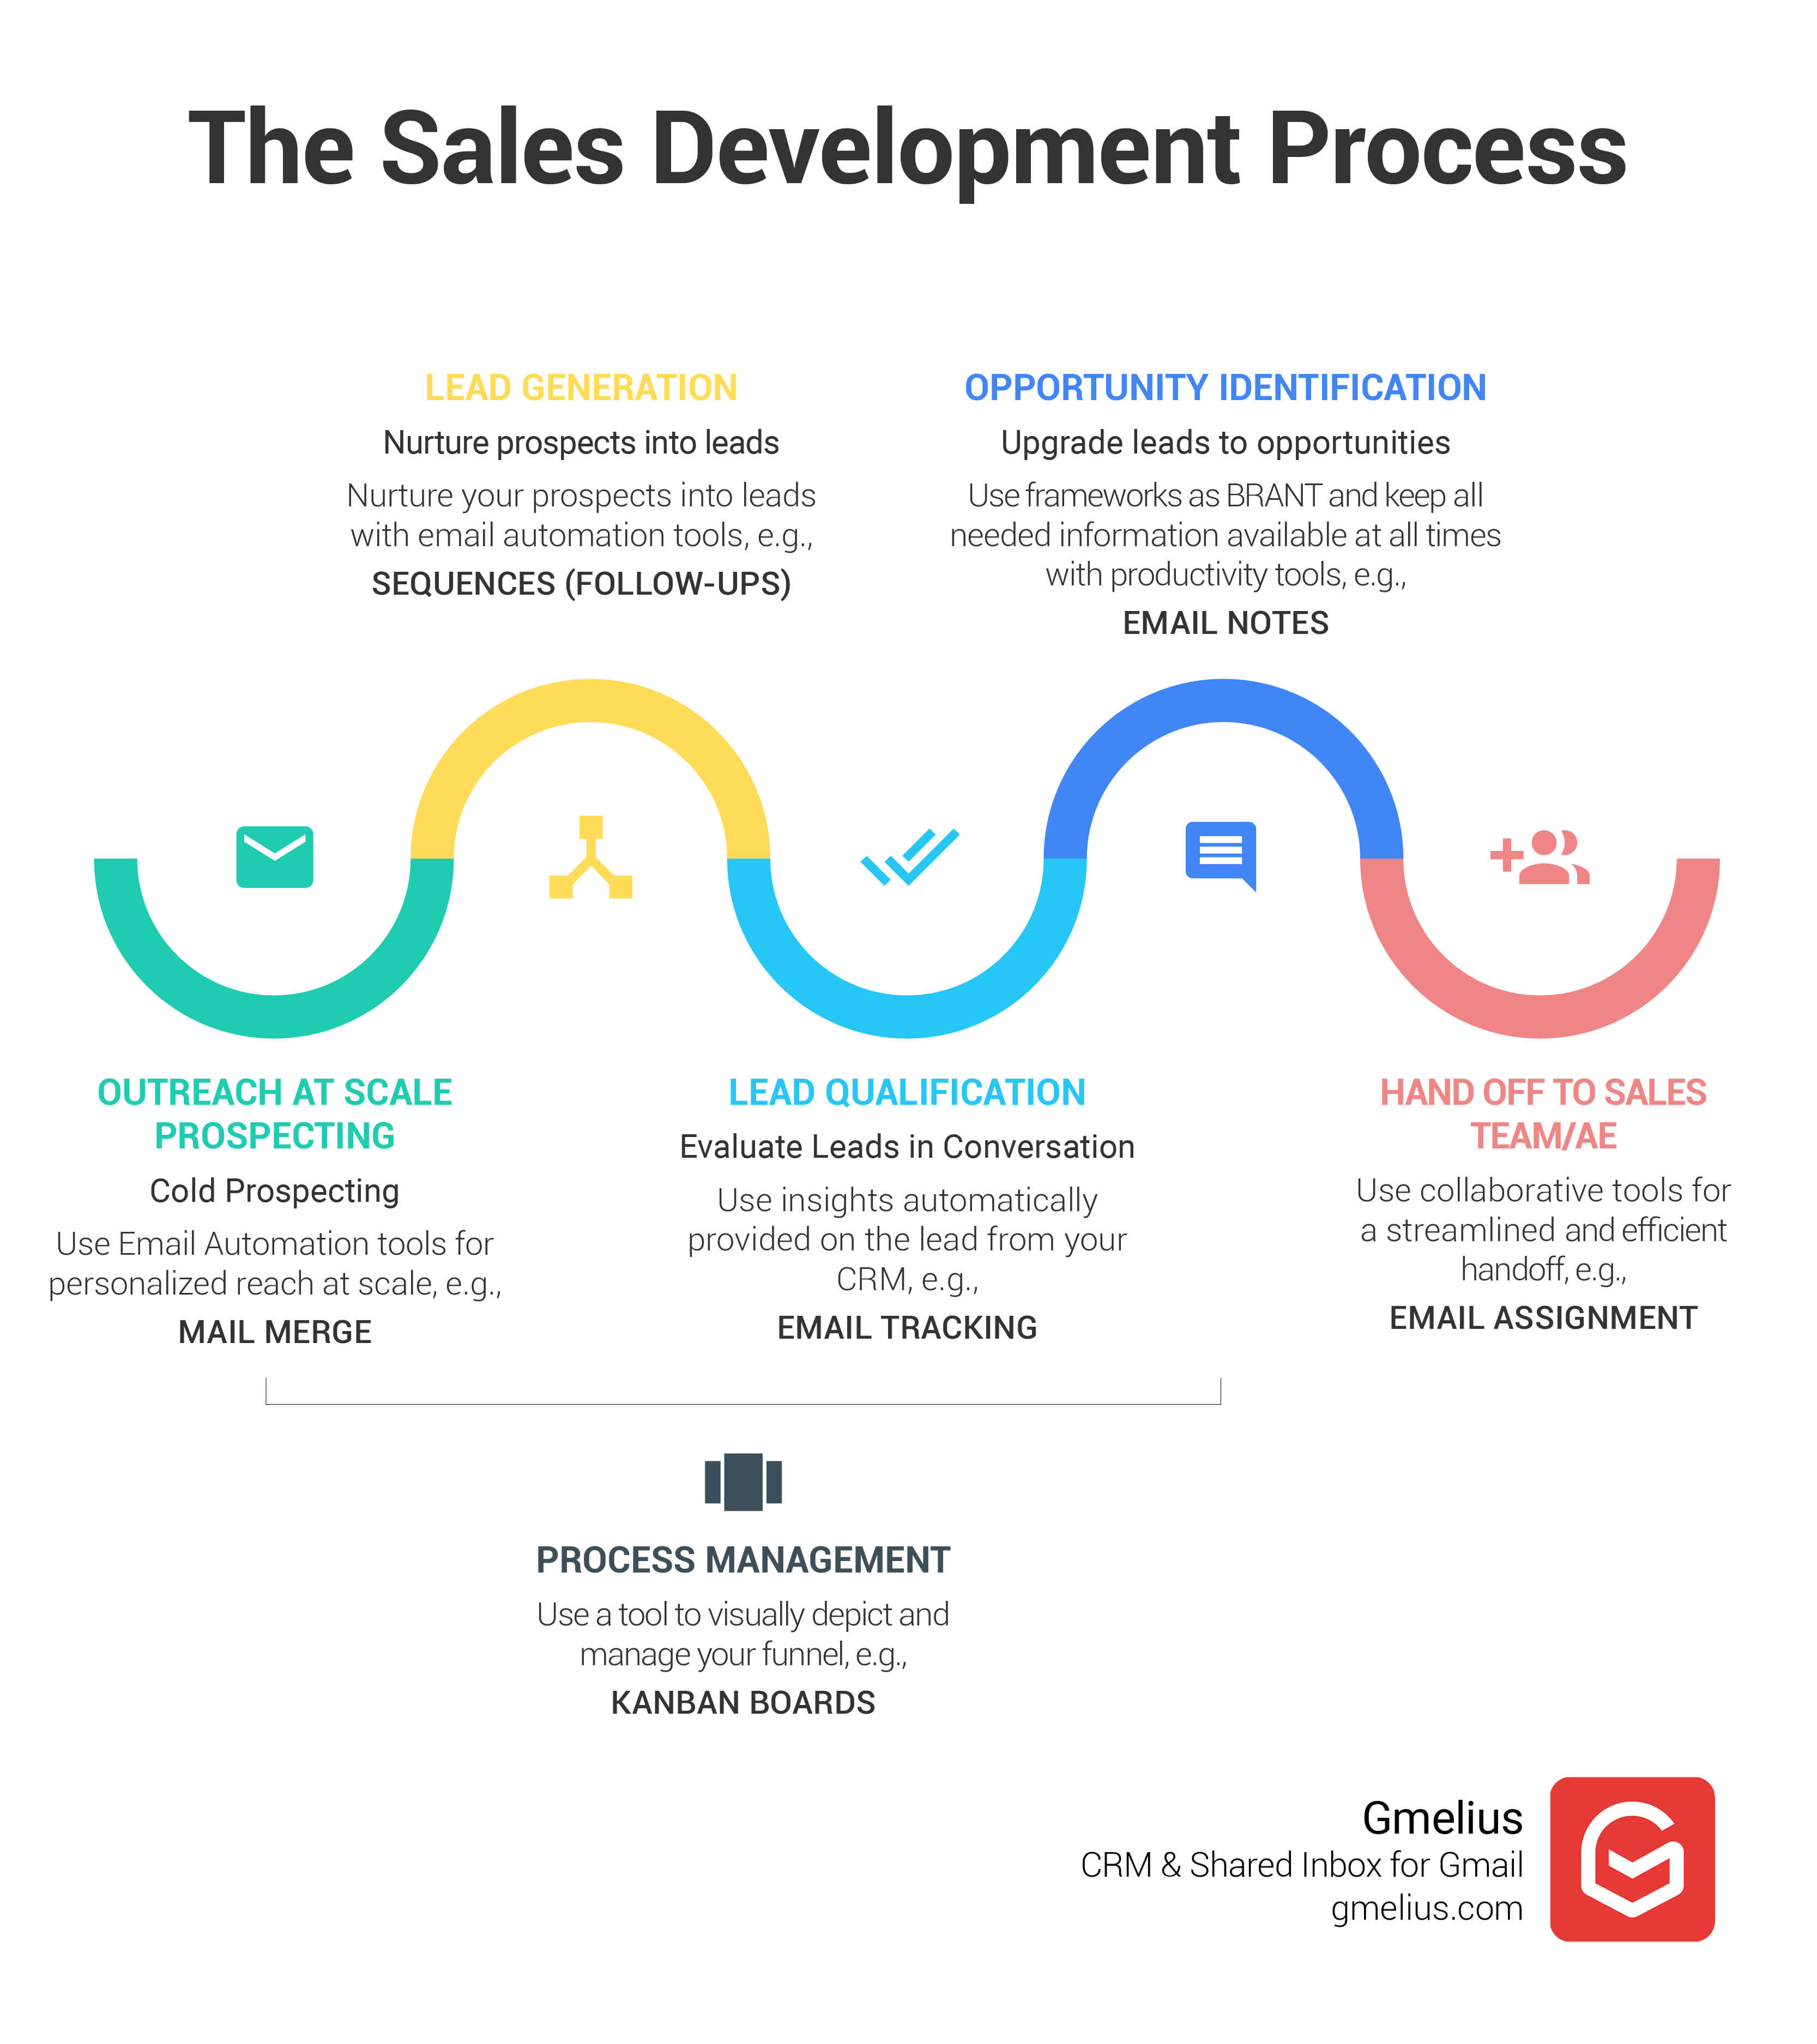 The Sales Development Process